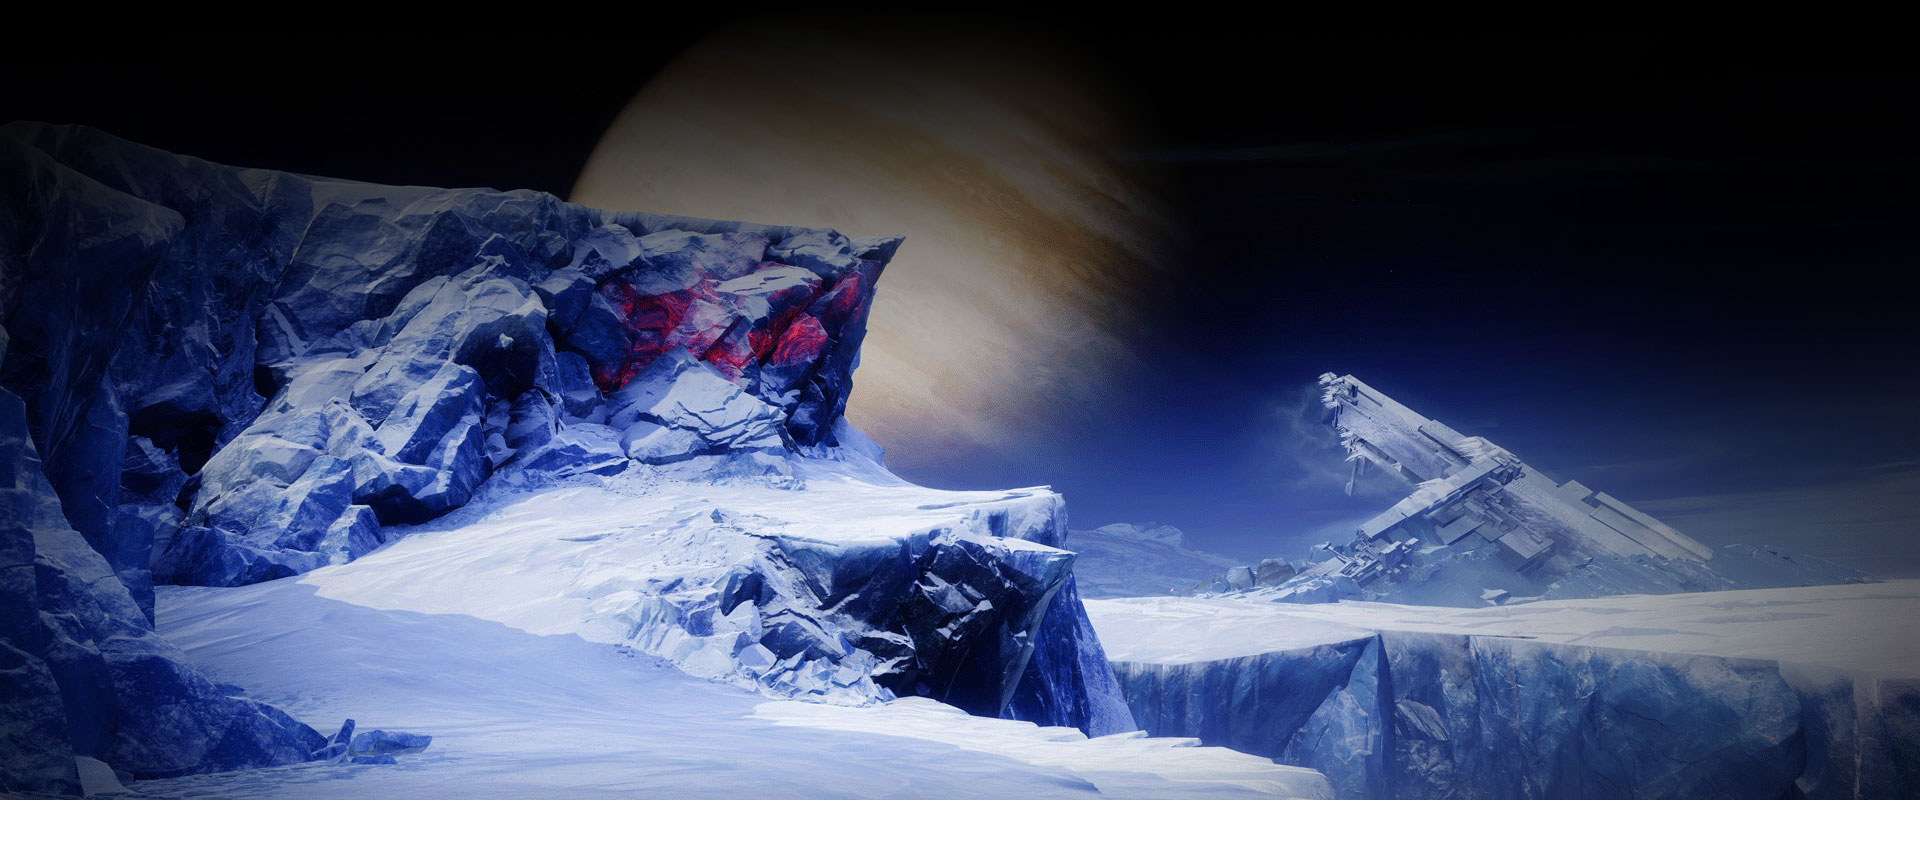 Icy cliffs with a large planet in the sky in the background